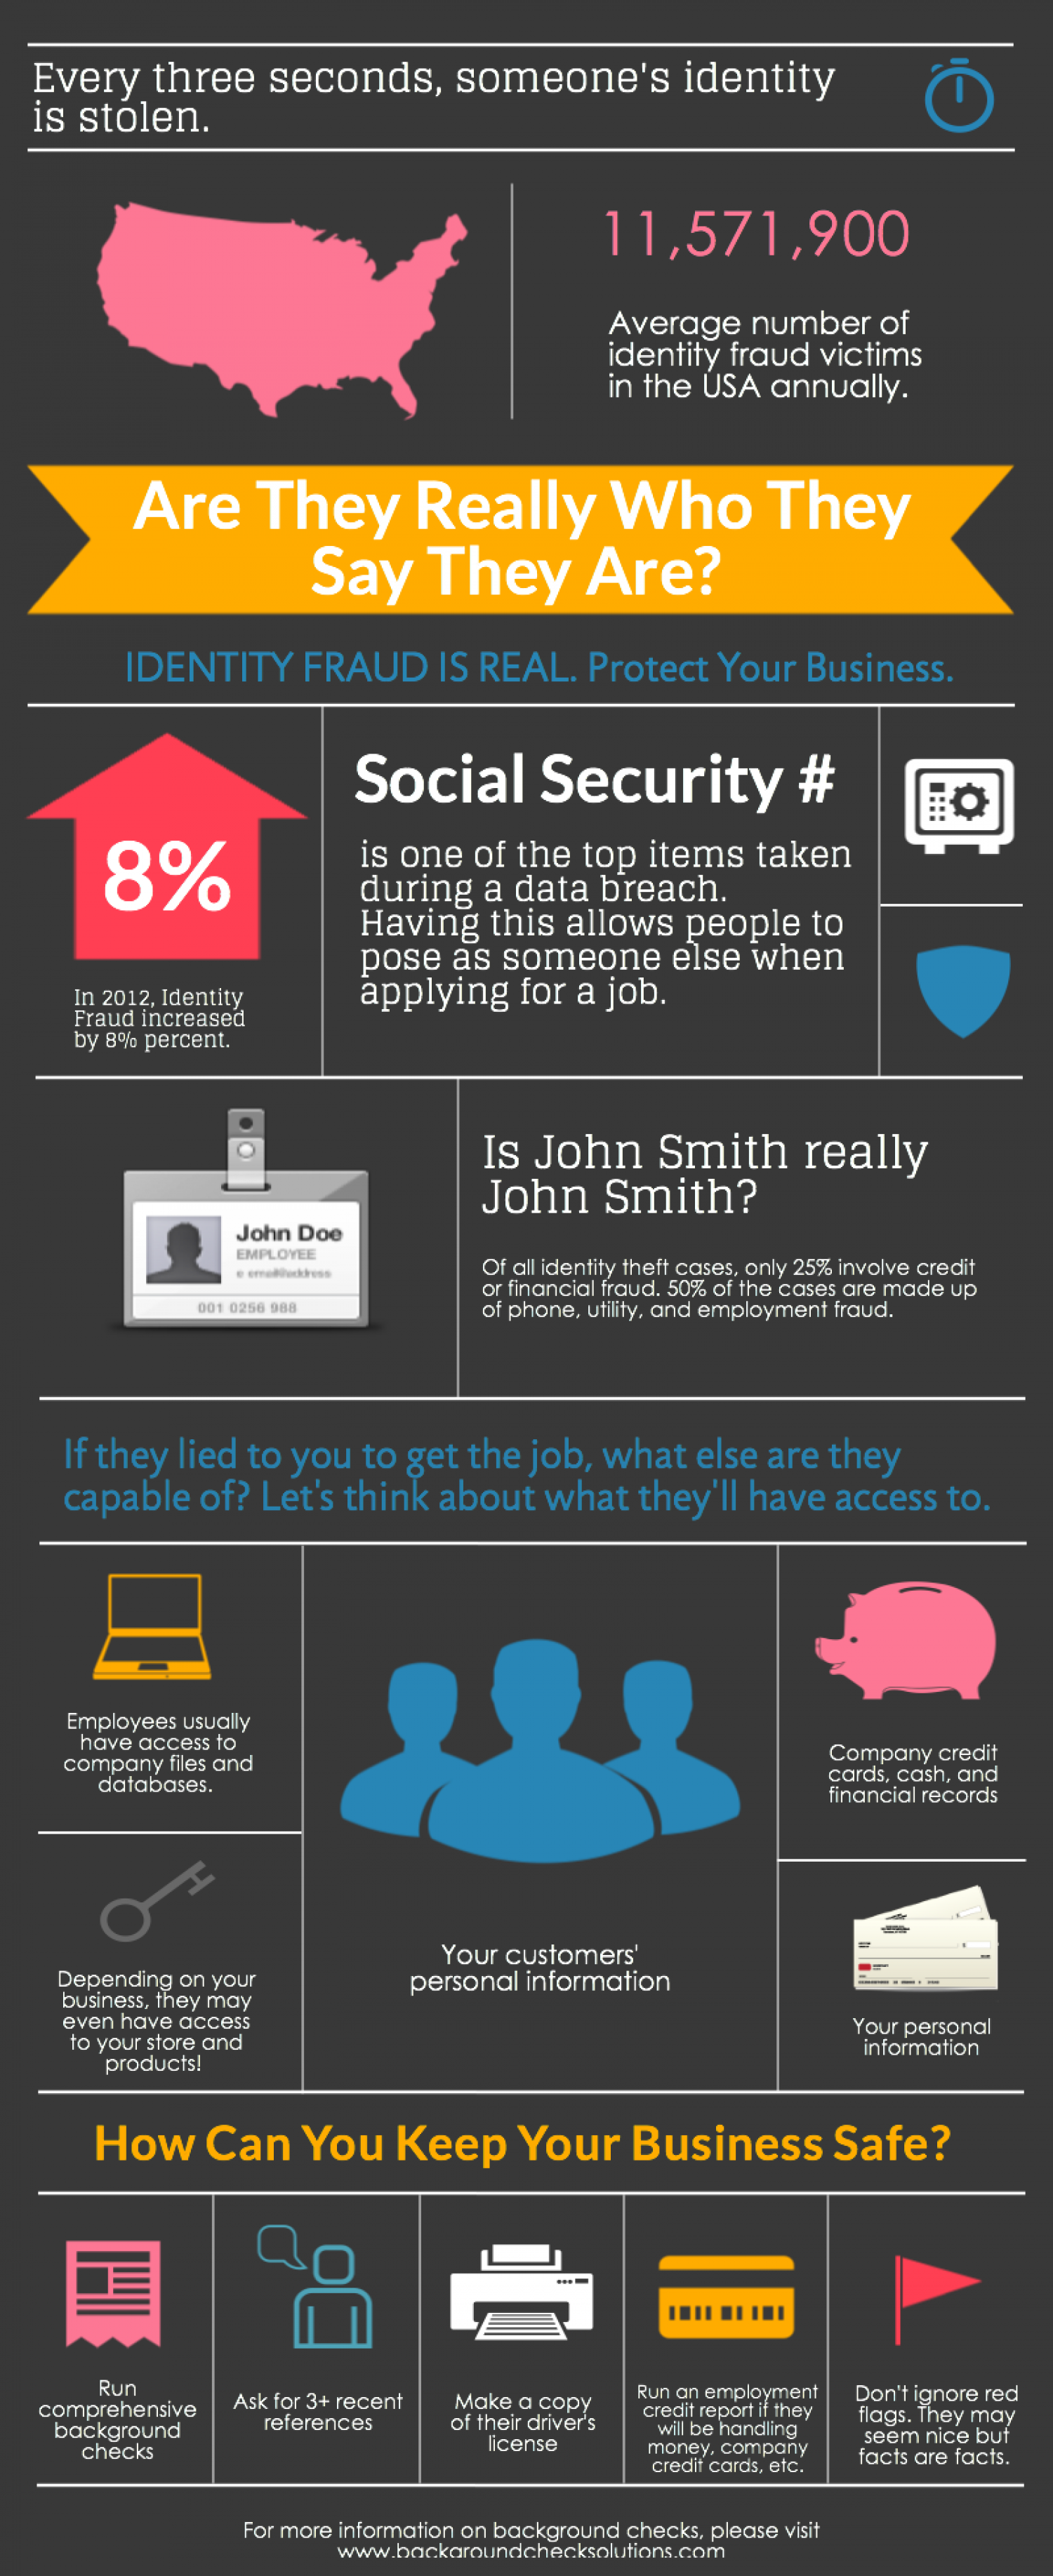 Are They Really Who They Say They Are? Infographic